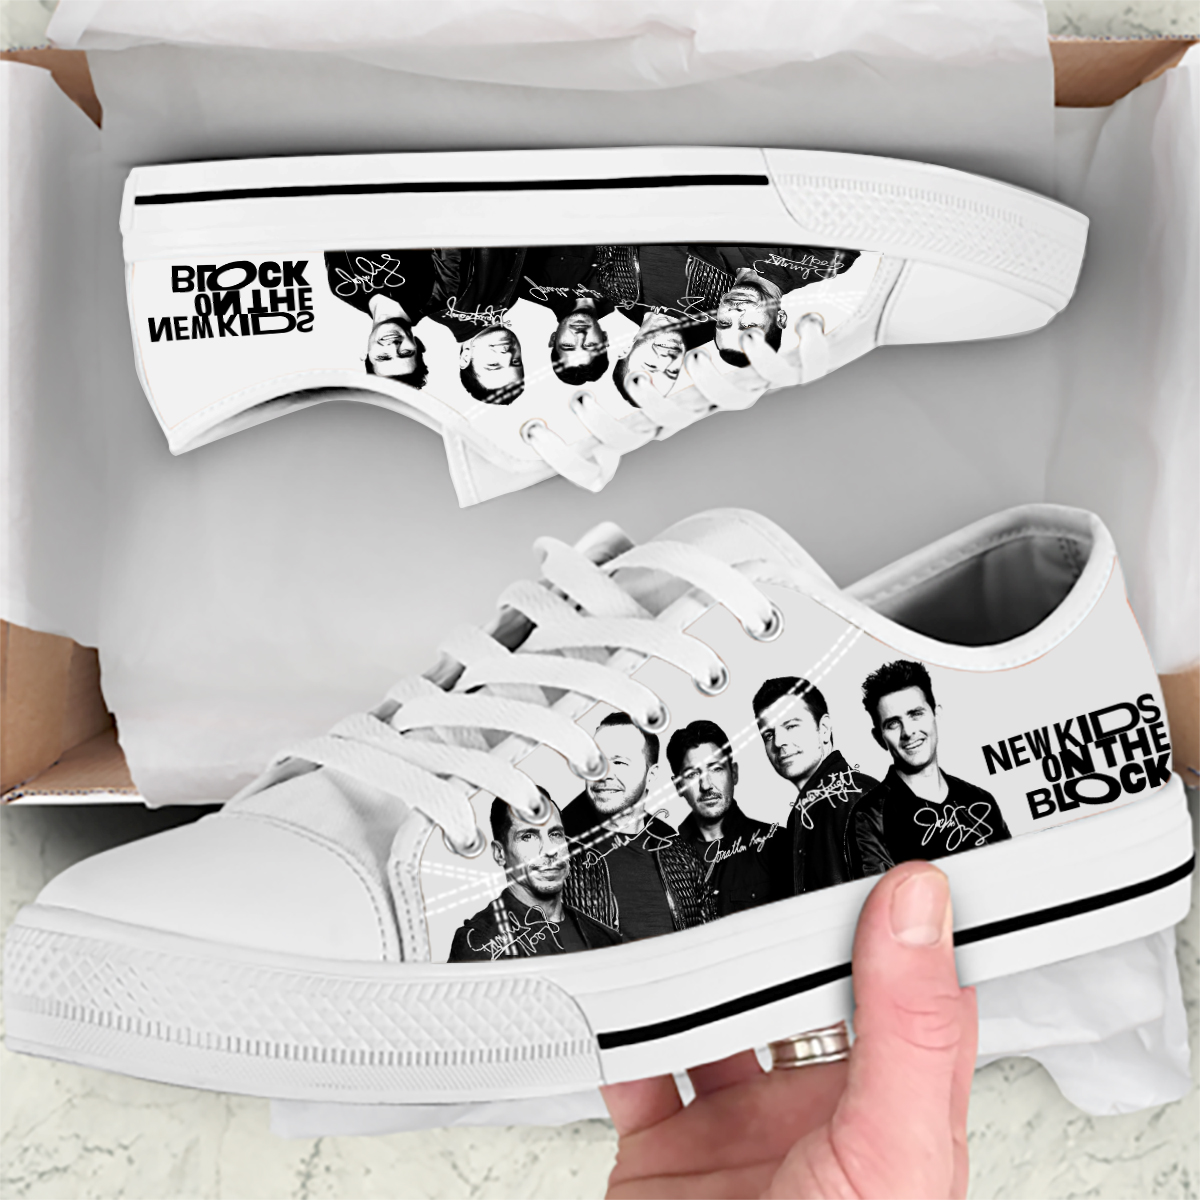 New Kids On The Block White Low Tops